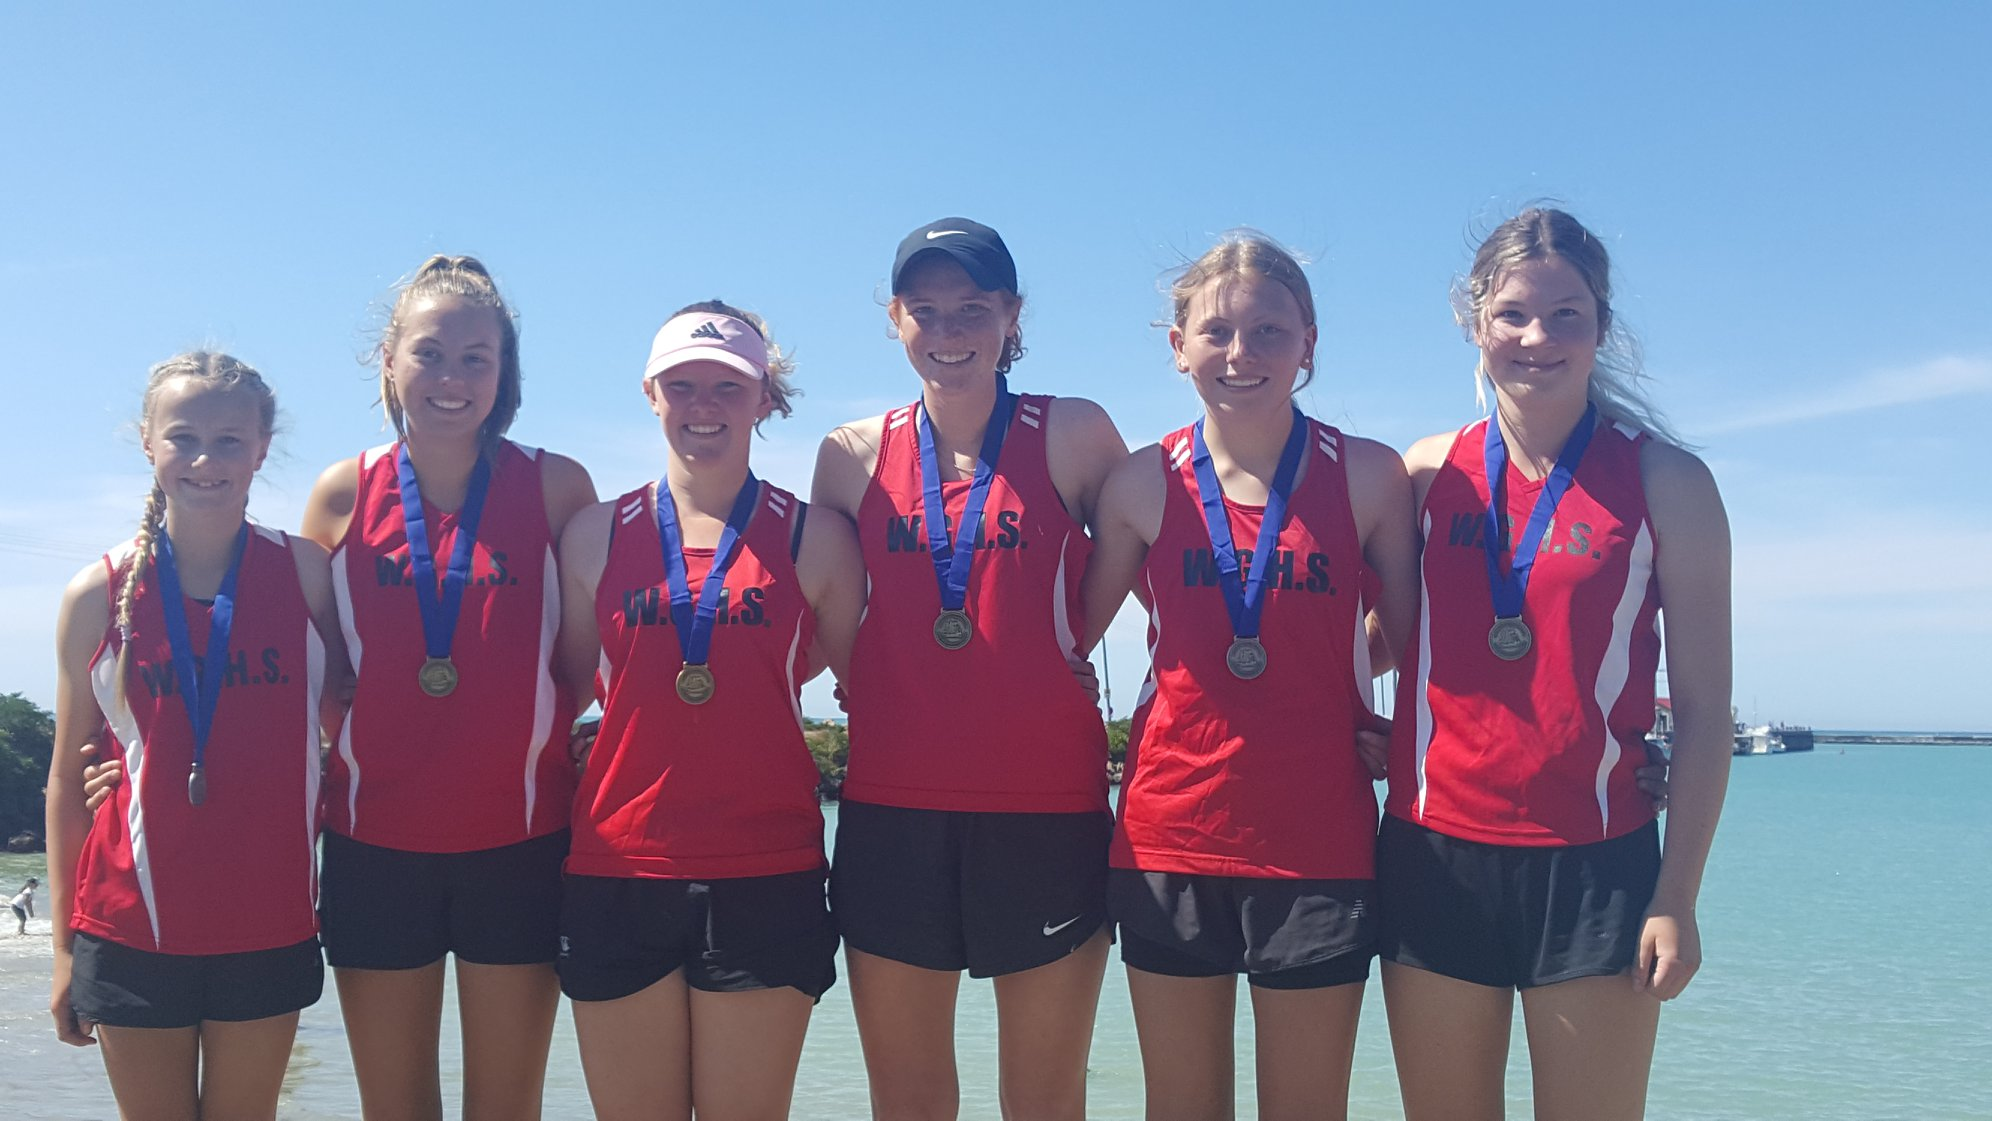 Waitaki Girls High rowing team wearing medals with sea in the background